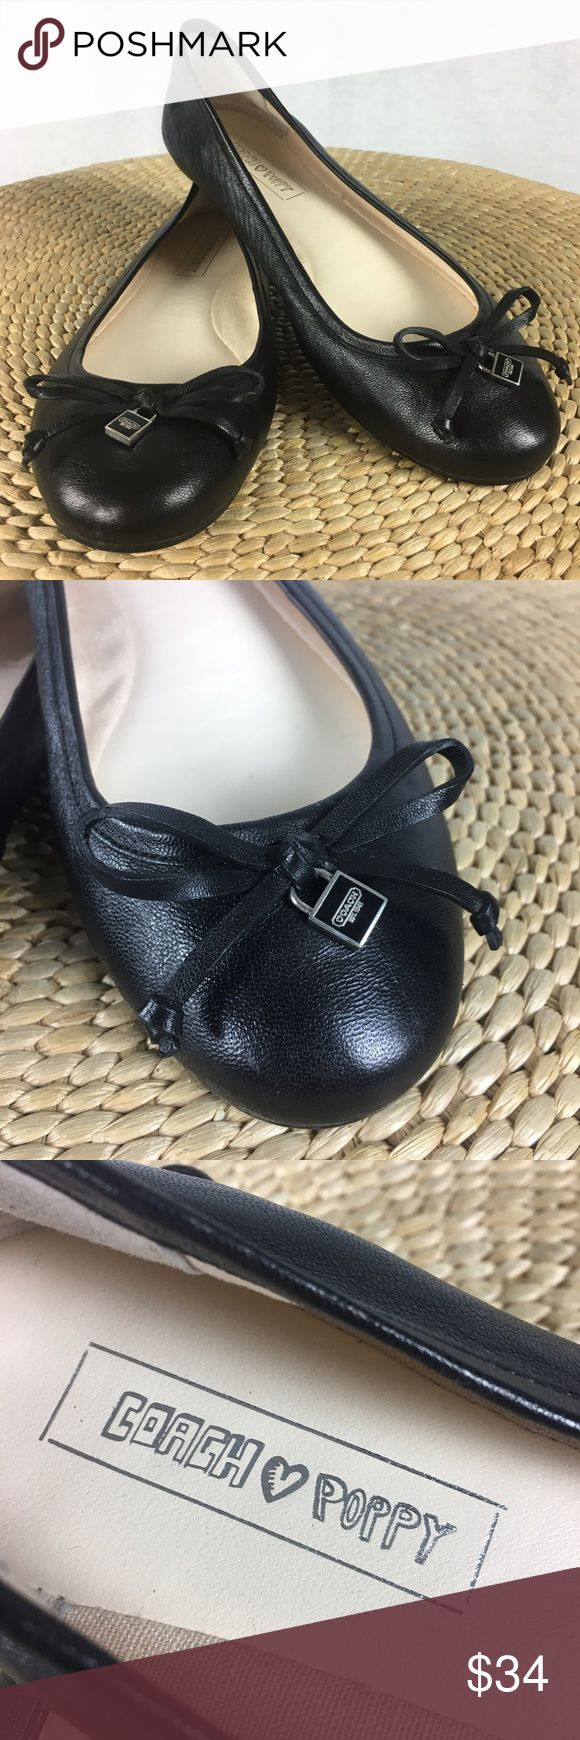 Coach Poppy Darling Ballet Black Leather Flats These lovely Darling flats from Coach are made of supple black leather and feature silver metal logo charms and tied leather bows on each shoe, along with signature imprinted soles. Minimal wear. Coach Shoes Flats & Loafers